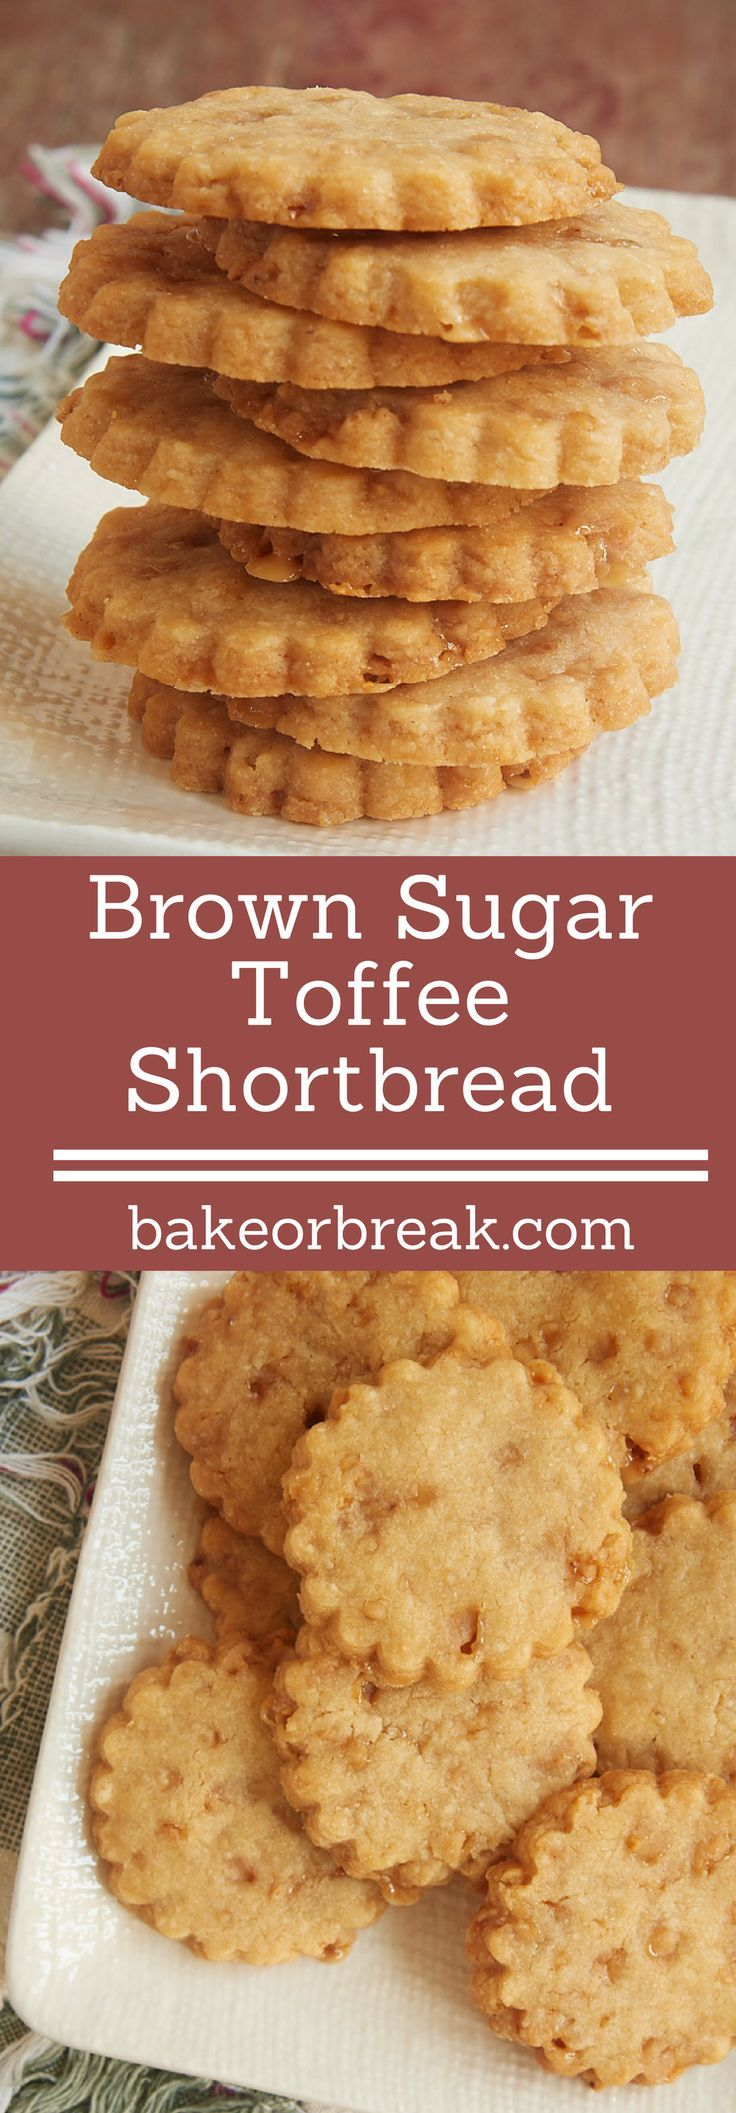 Brown Sugar Toffee Shortbread pack a lot of flavor in a small package. Love this simple recipe! - Bake or Break ~ http://www.bakeorbreak.com